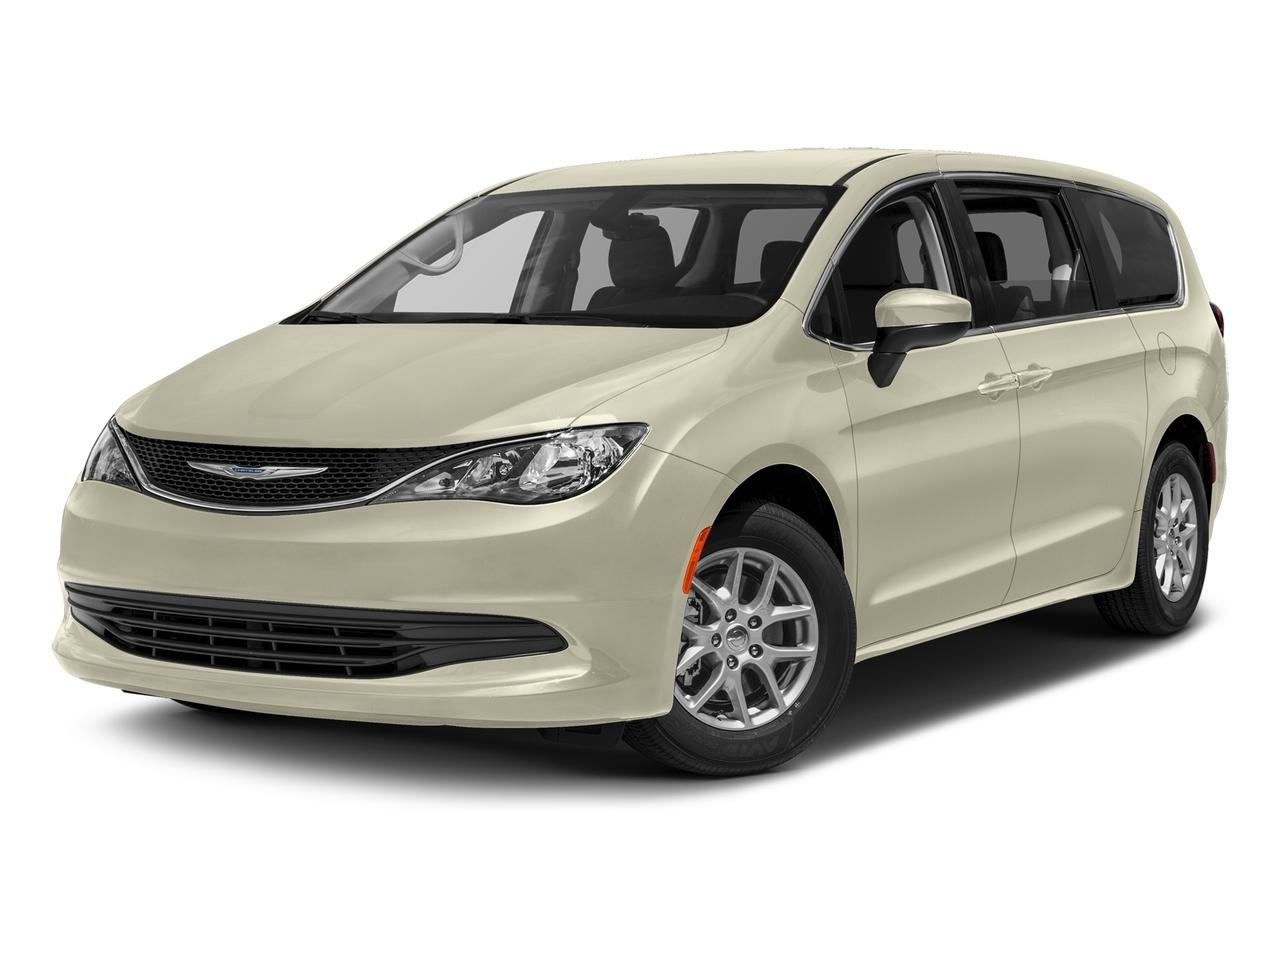 2017 Chrysler Pacifica Vehicle Photo in Pittsburgh, PA 15226